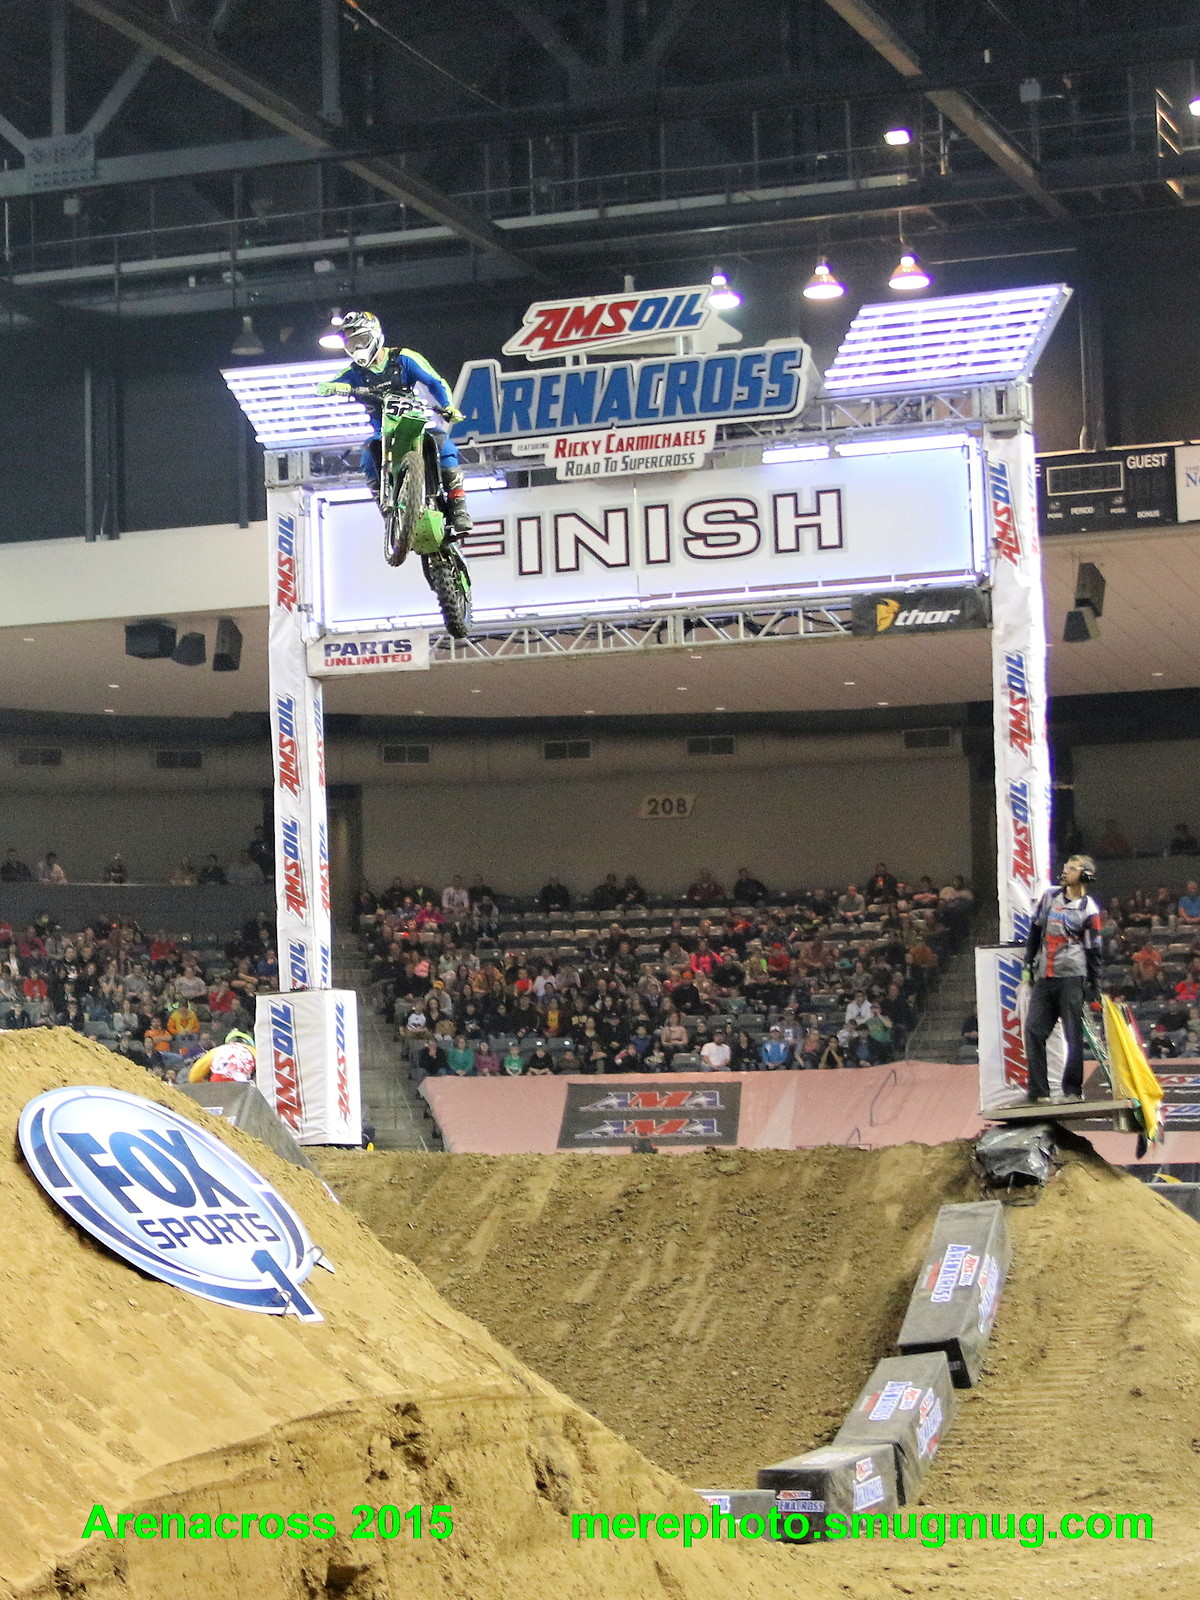 Arenacross 2015 Council Bluffs IA - mharmon - Motocross Pictures - Vital MX